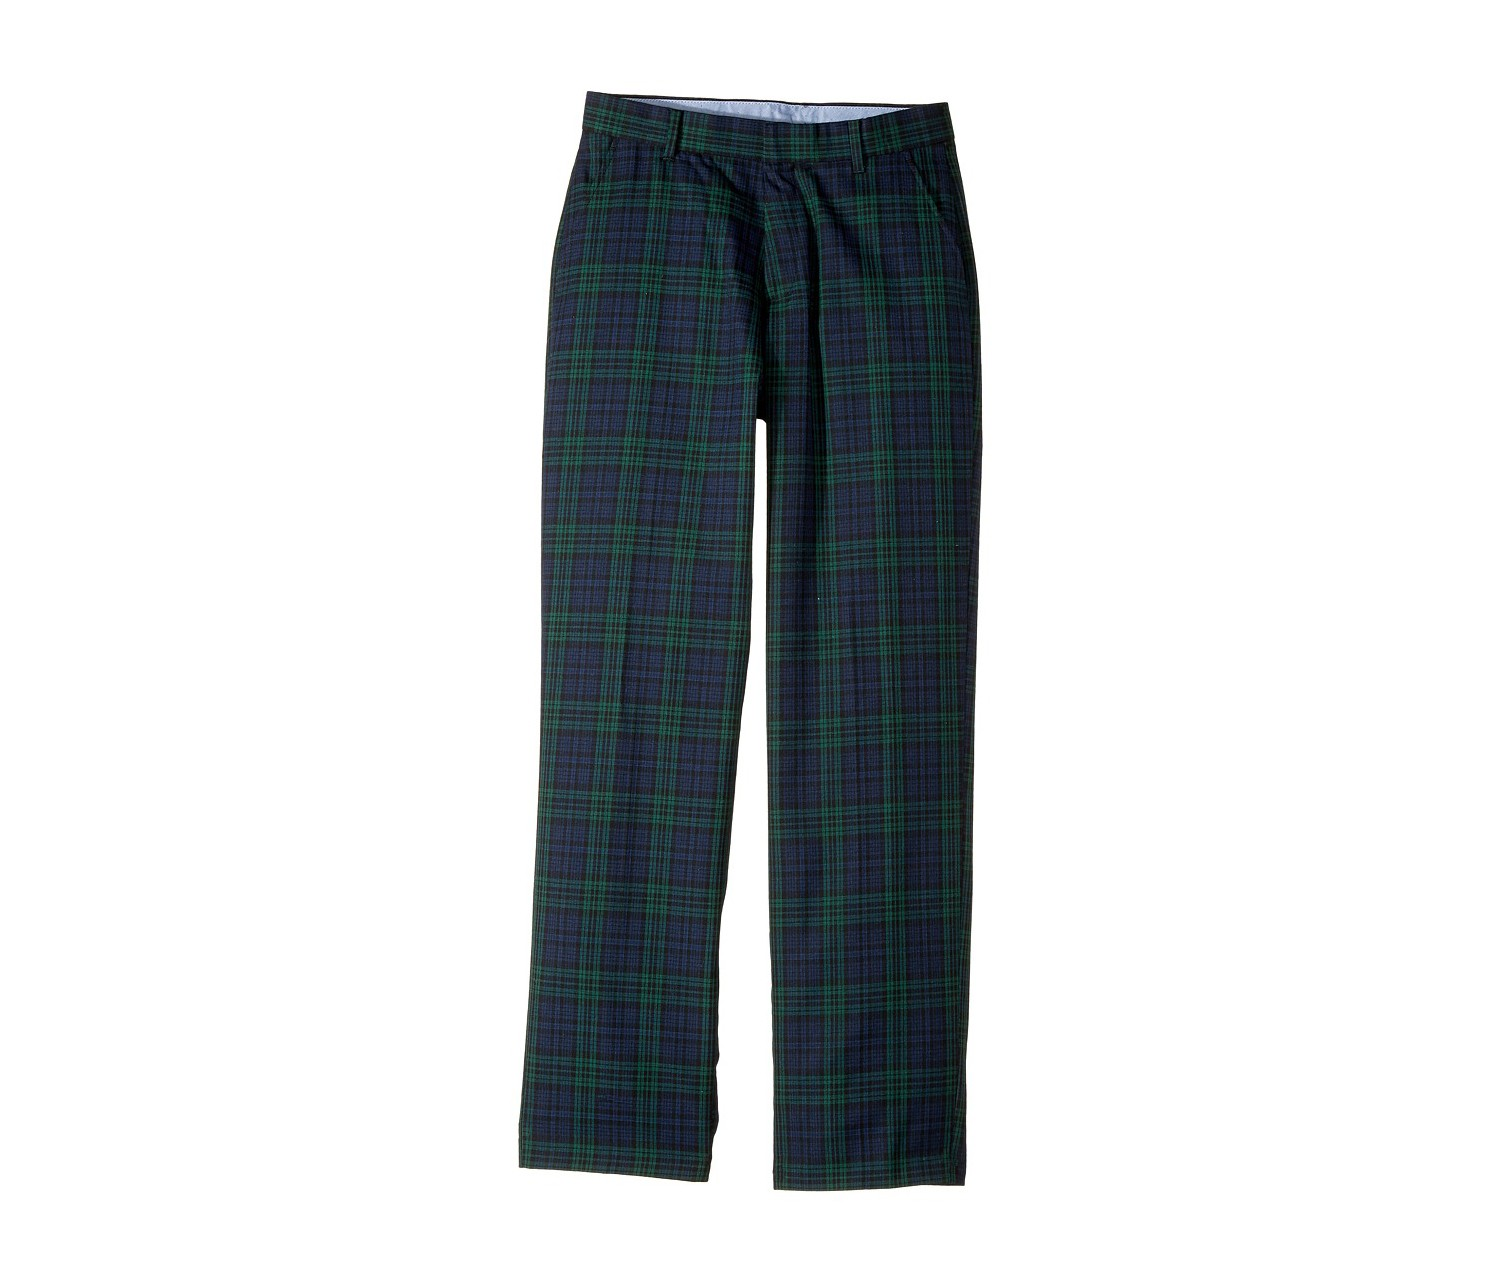 Tommy Hilfiger Boy's Plaid Pants, Dark Green